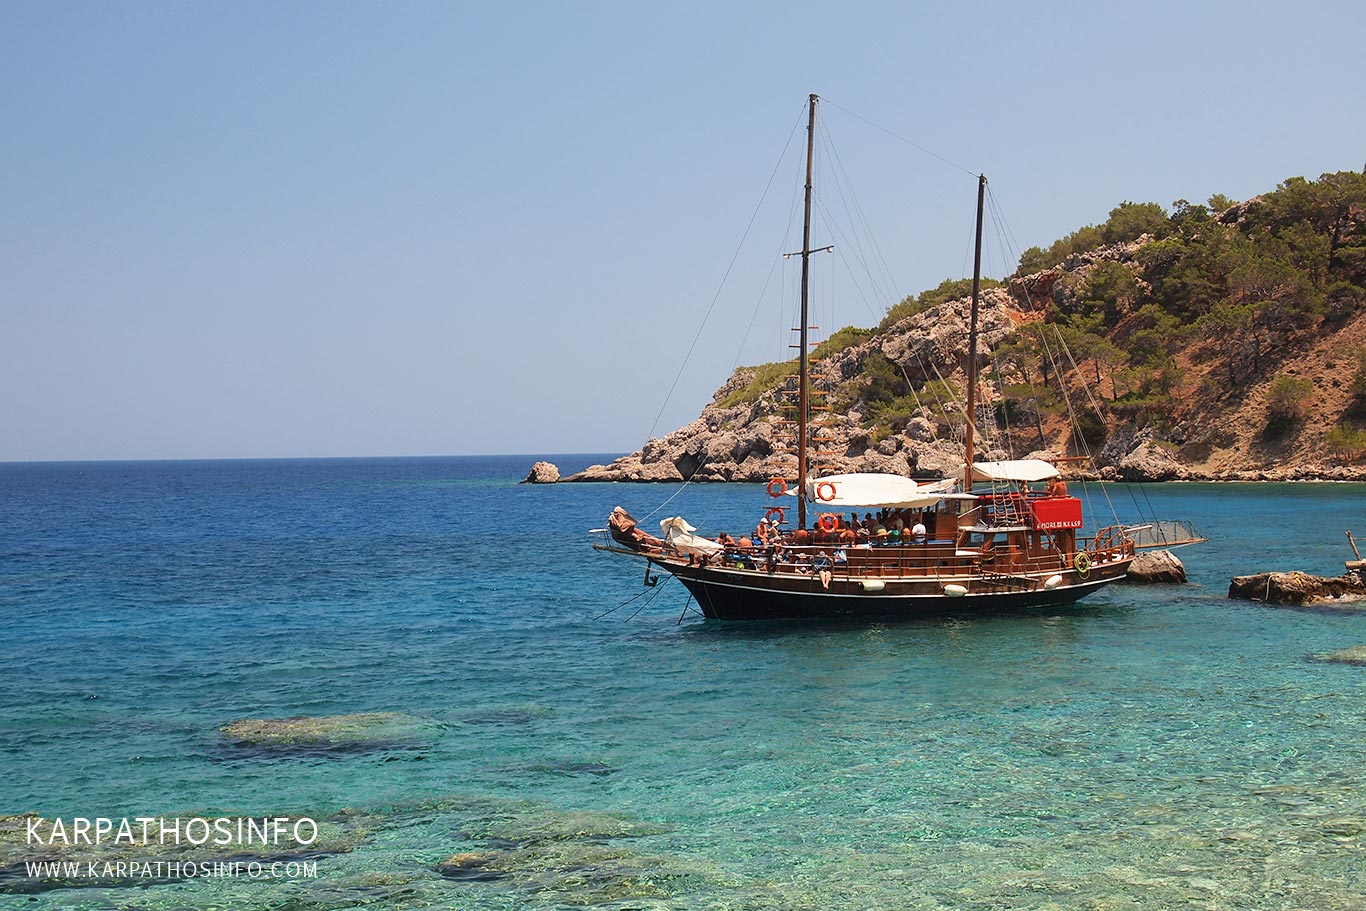 Karpathos by boat